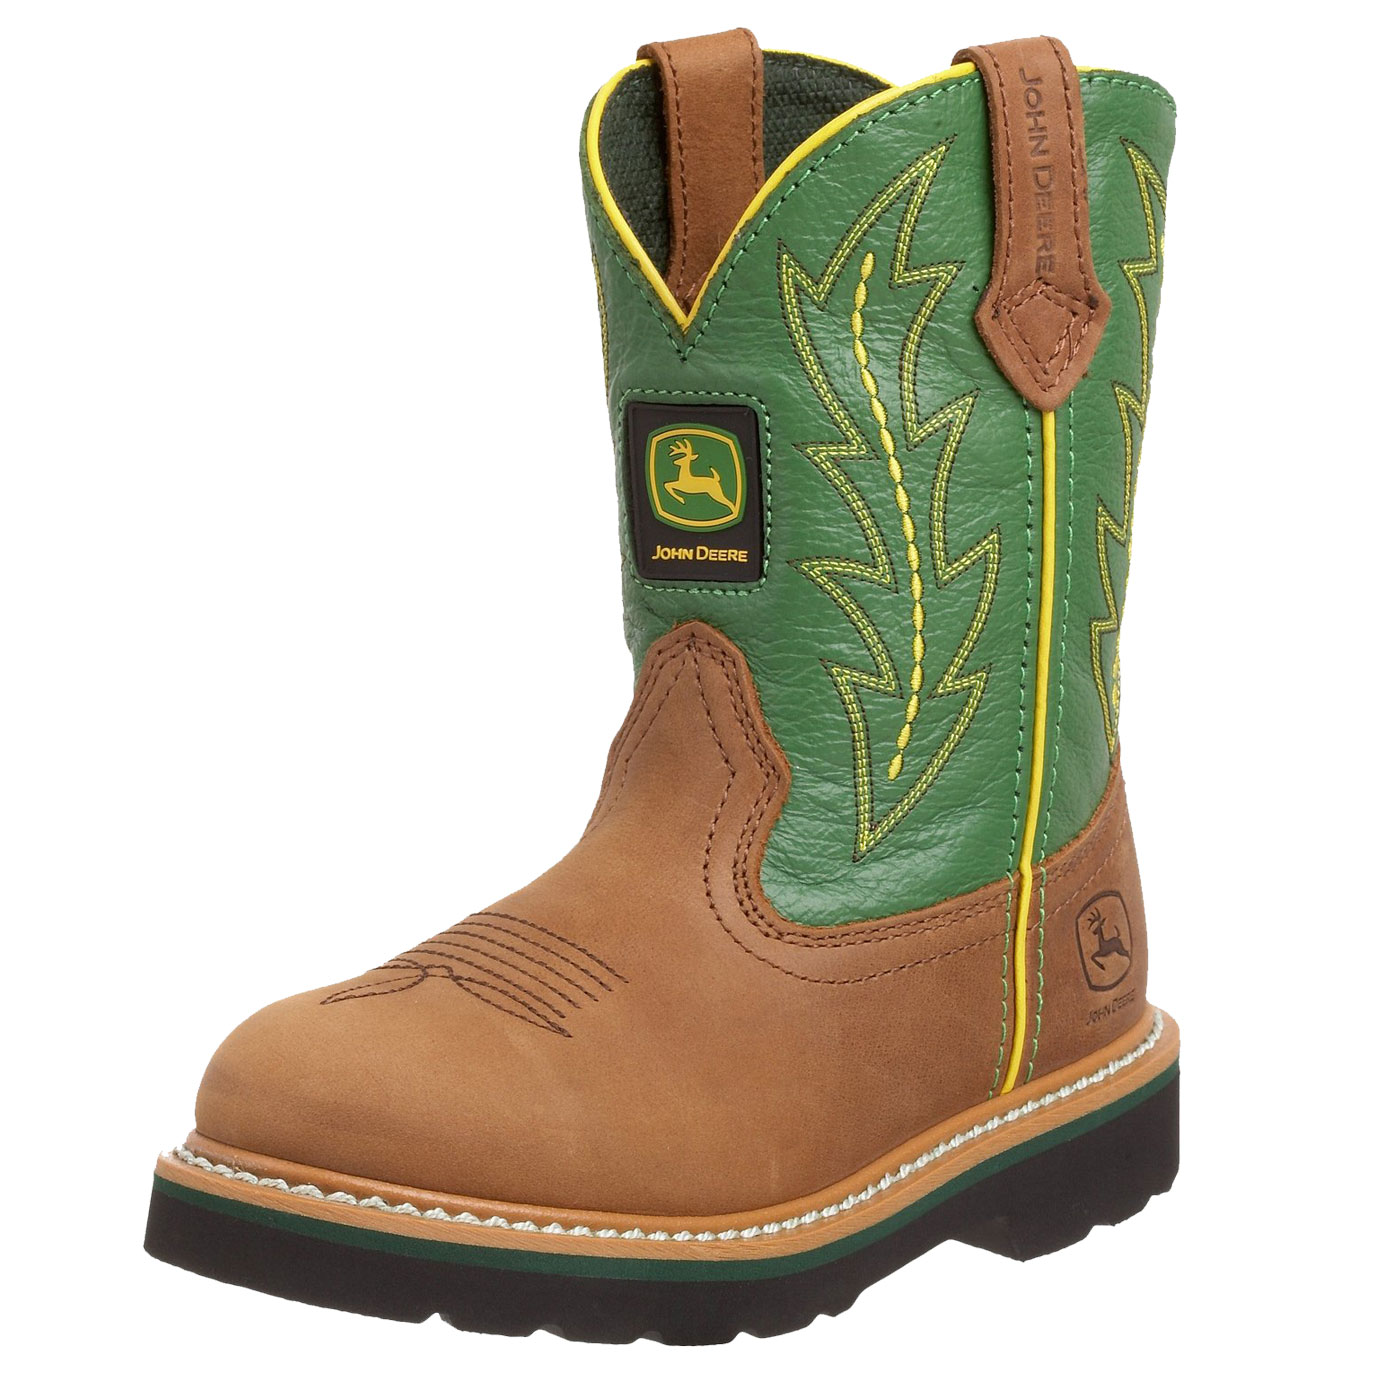 John Deere Children's Wellington Boot | QC Supply